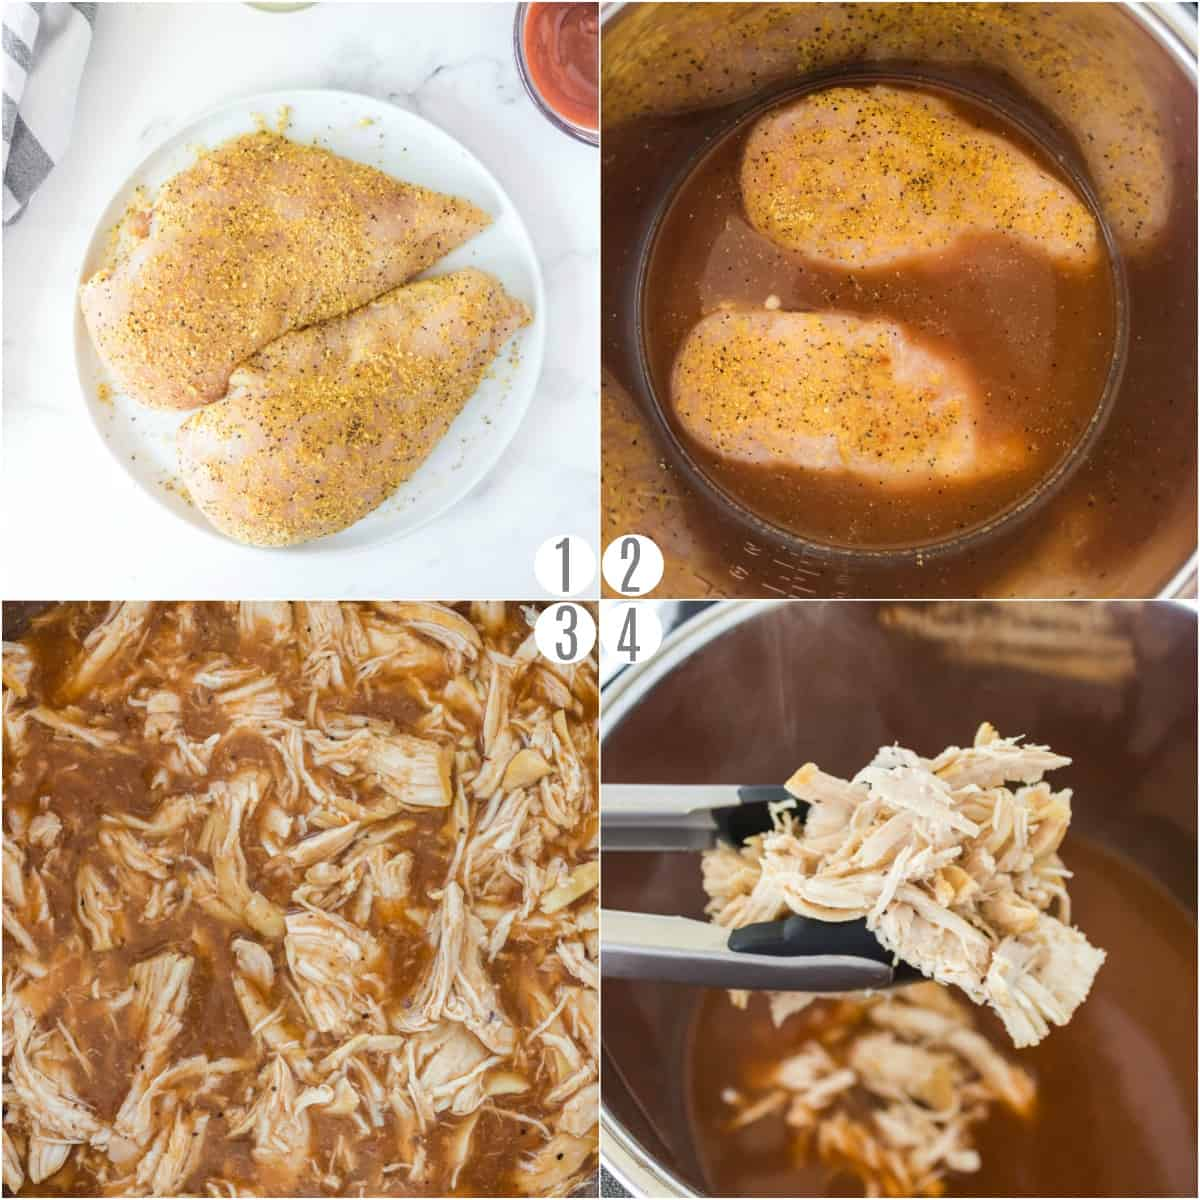 Step by step photos showing how to make shredded chicken in the pressure cooker.